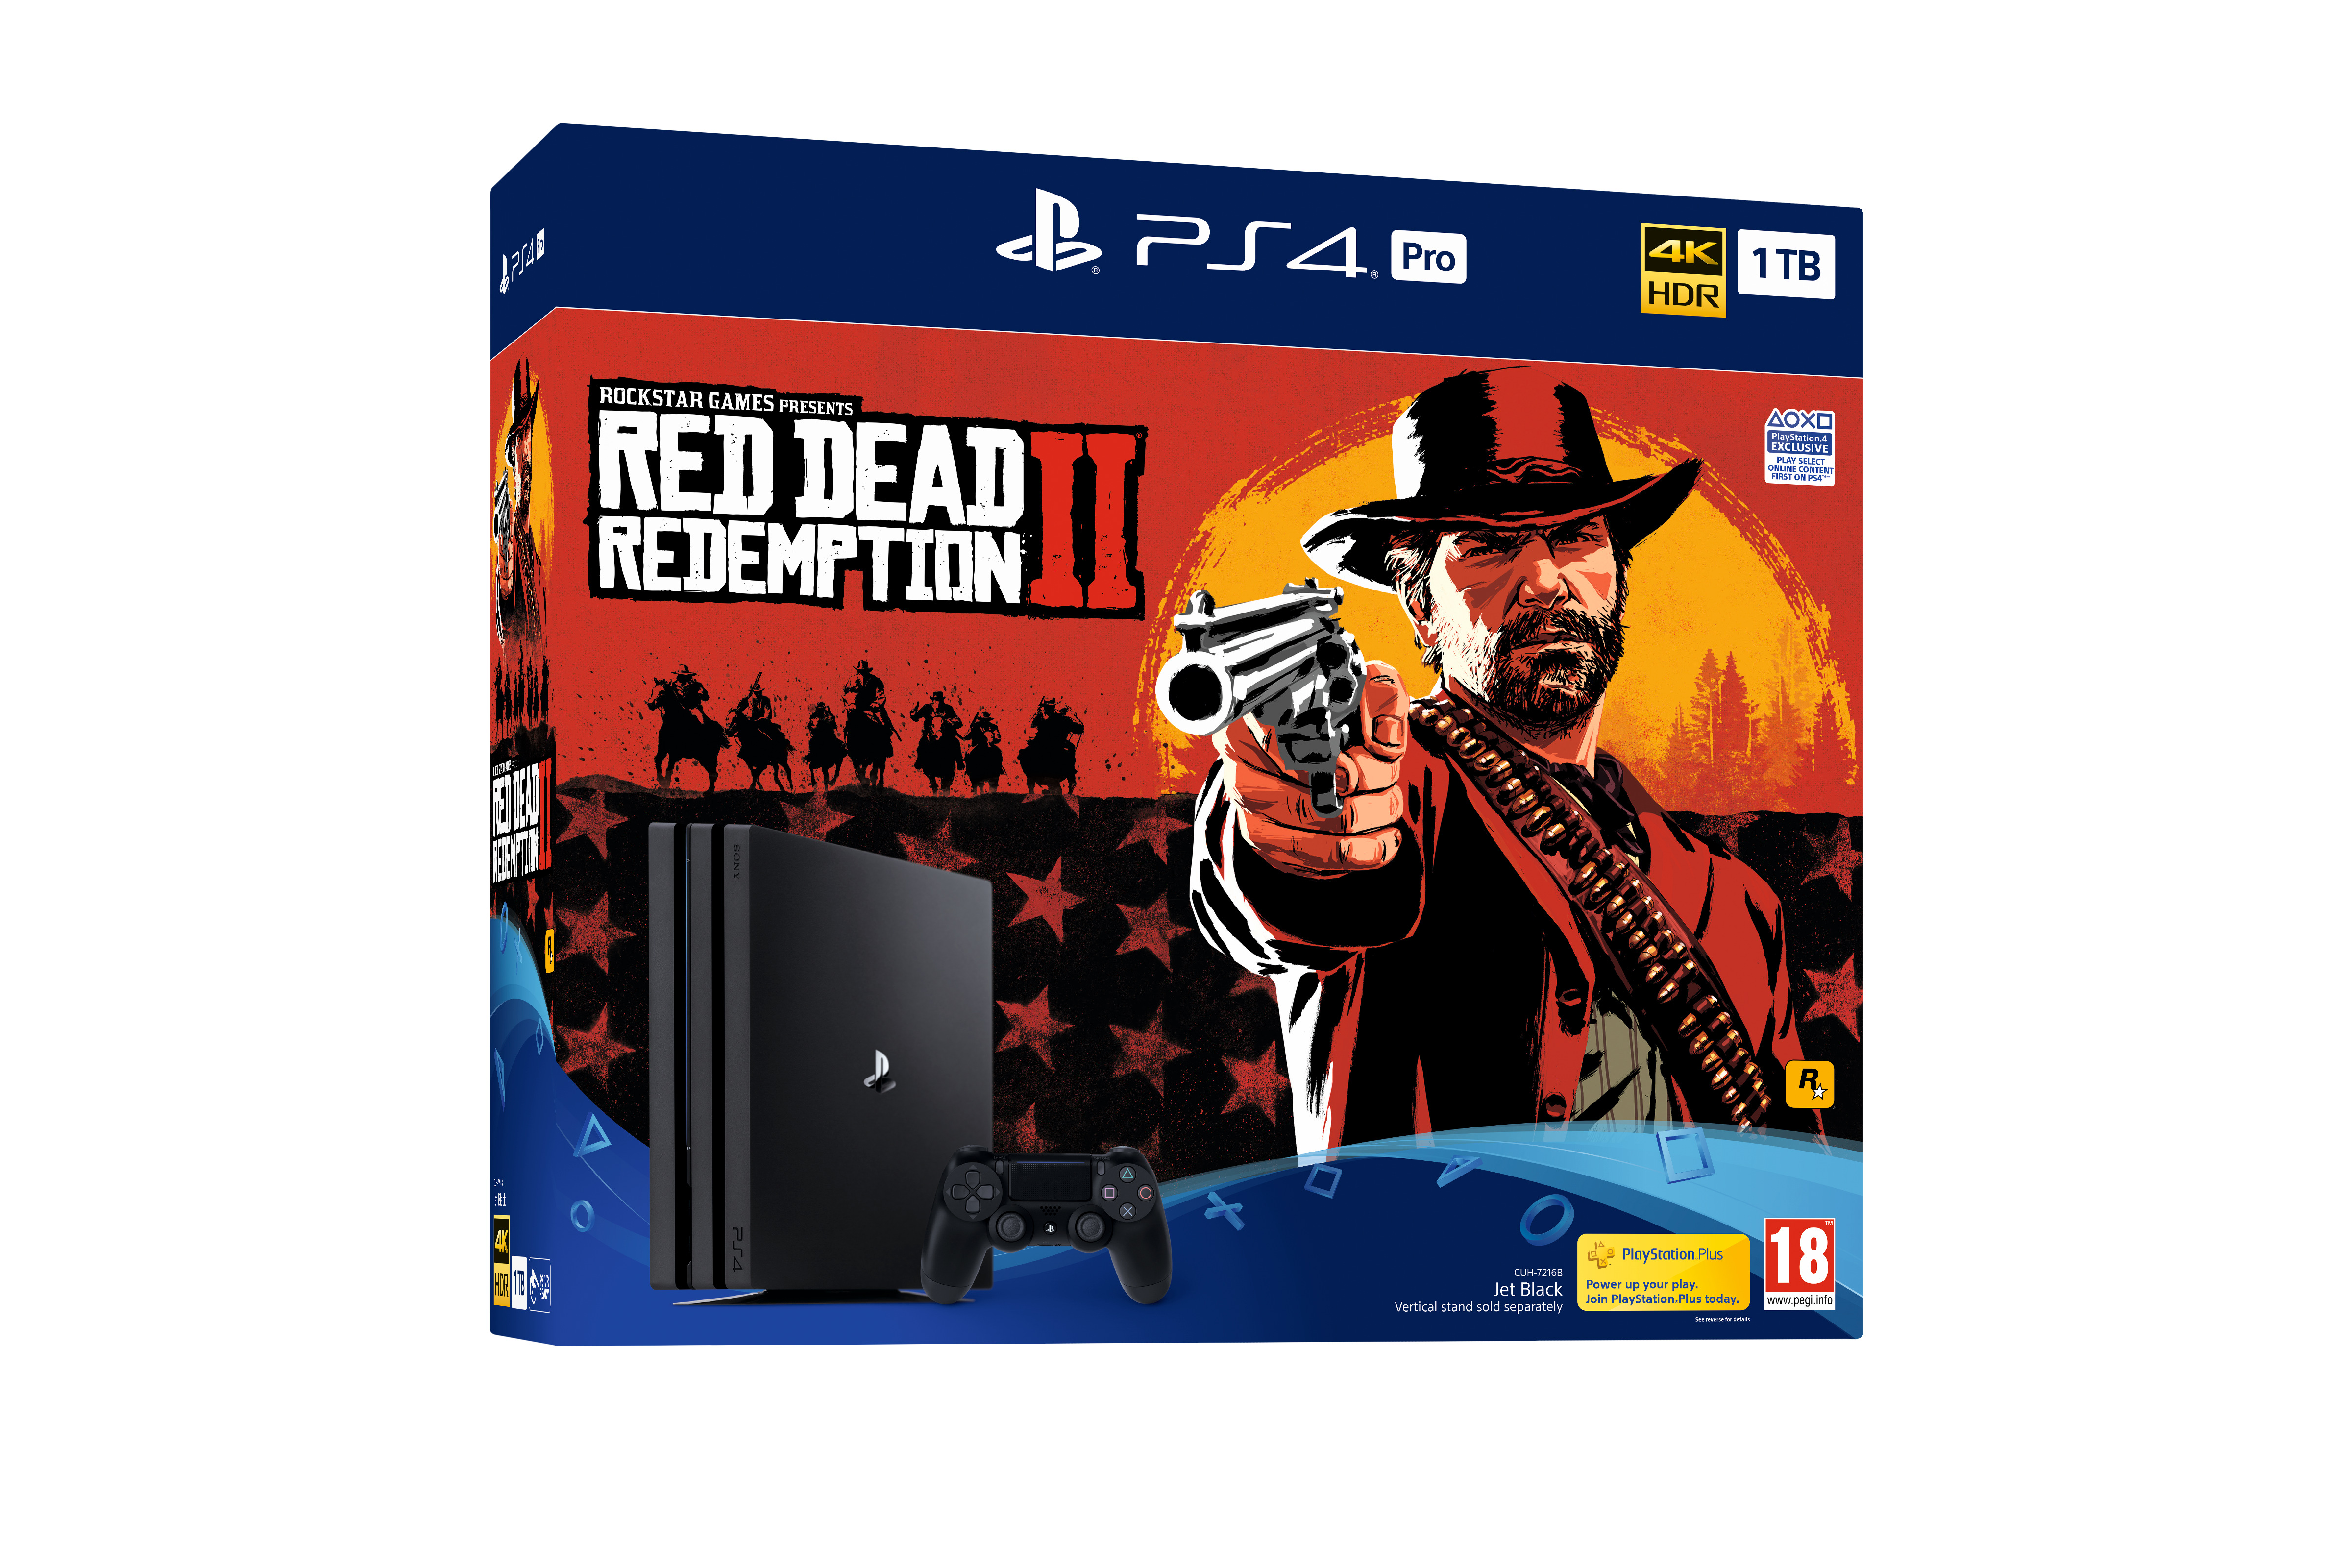 red dead redemption 2 ultimate edition ps4 includes